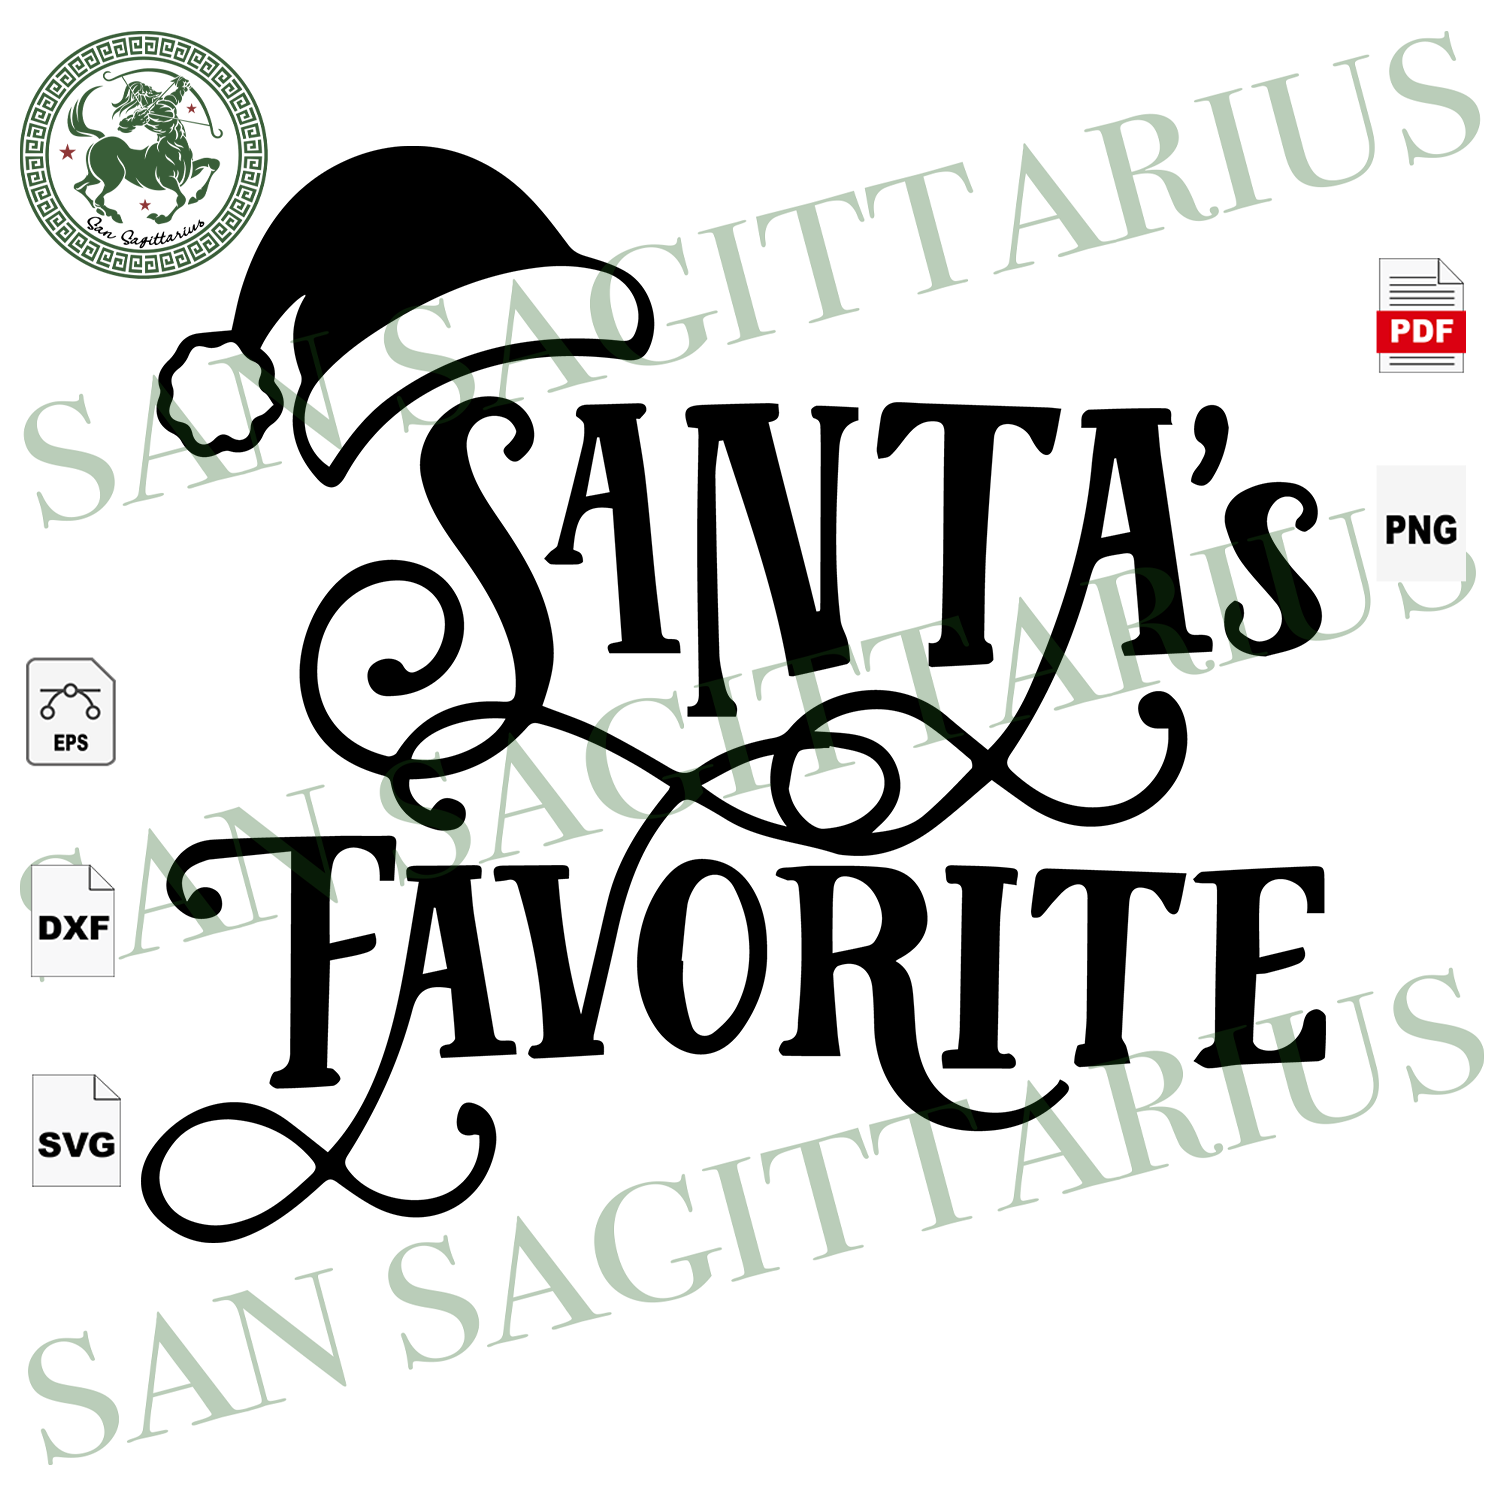 Santa's Favorite, Christmas Svg, Santa Svg, Santa Clause, Santa Clause Shirts, Christmas Gifts, Merry Christmas, Christmas Holiday, Christmas Party, Funny Christmas, Xmas Gift, Christmas Gift